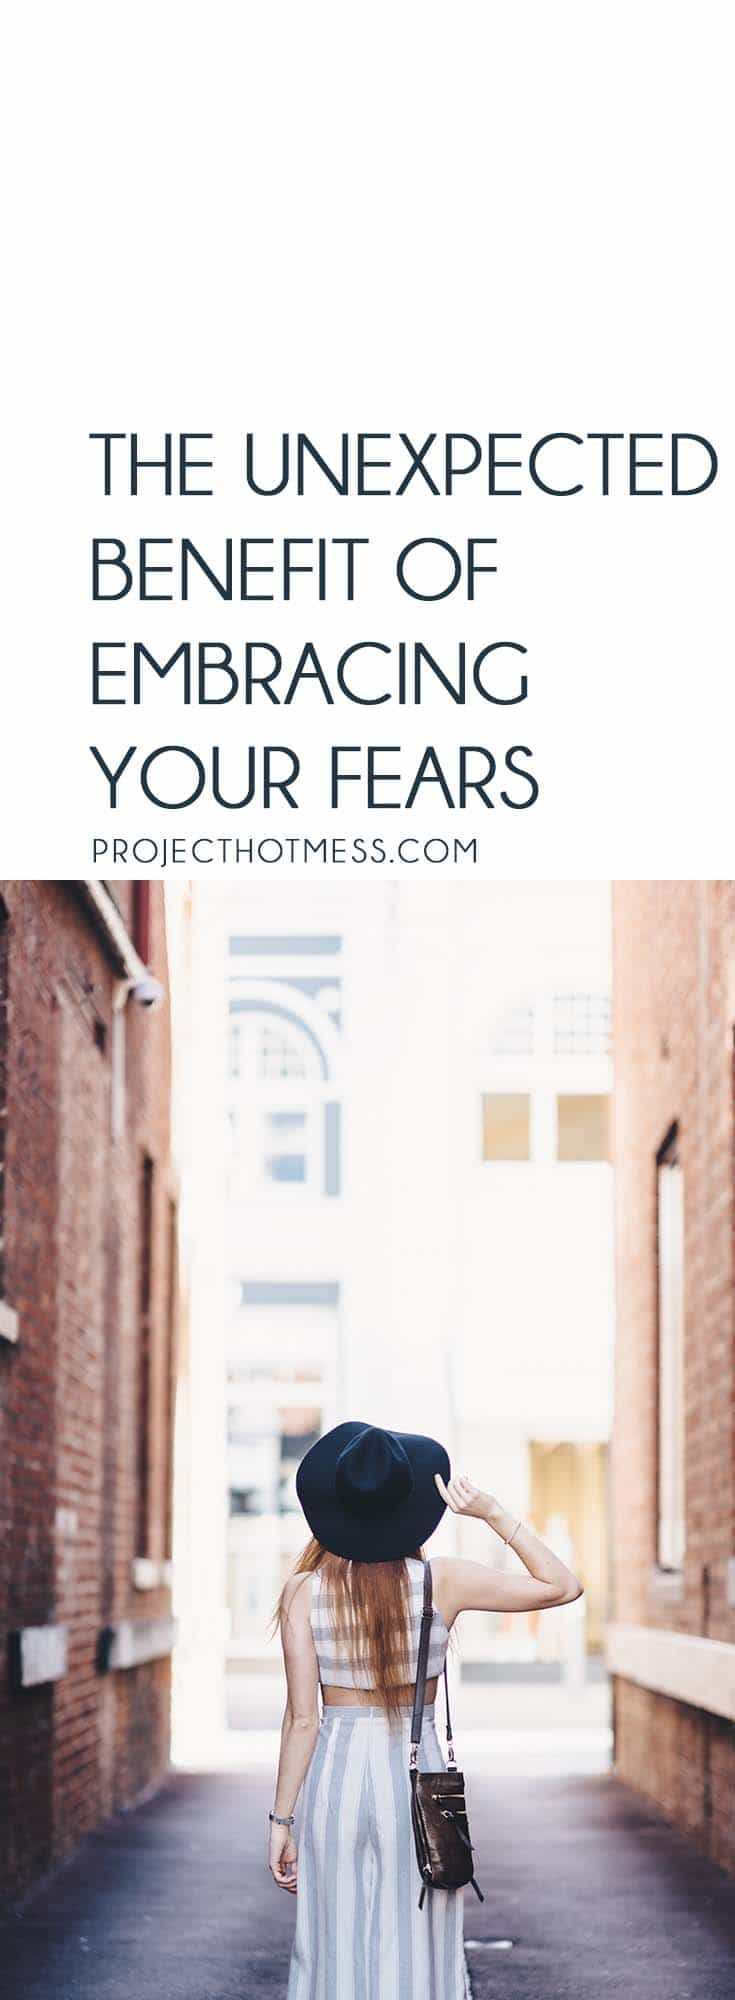 There's no denying we all have things we are scared of and fear. But embracing your fears and using them to your advantage can sometimes be the best option. via @project_hotmess